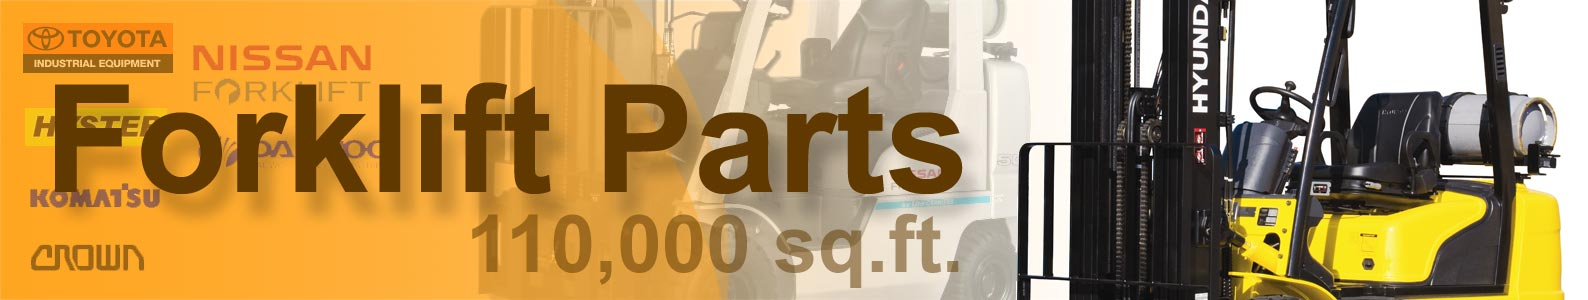 Forklift Parts for Forklifts